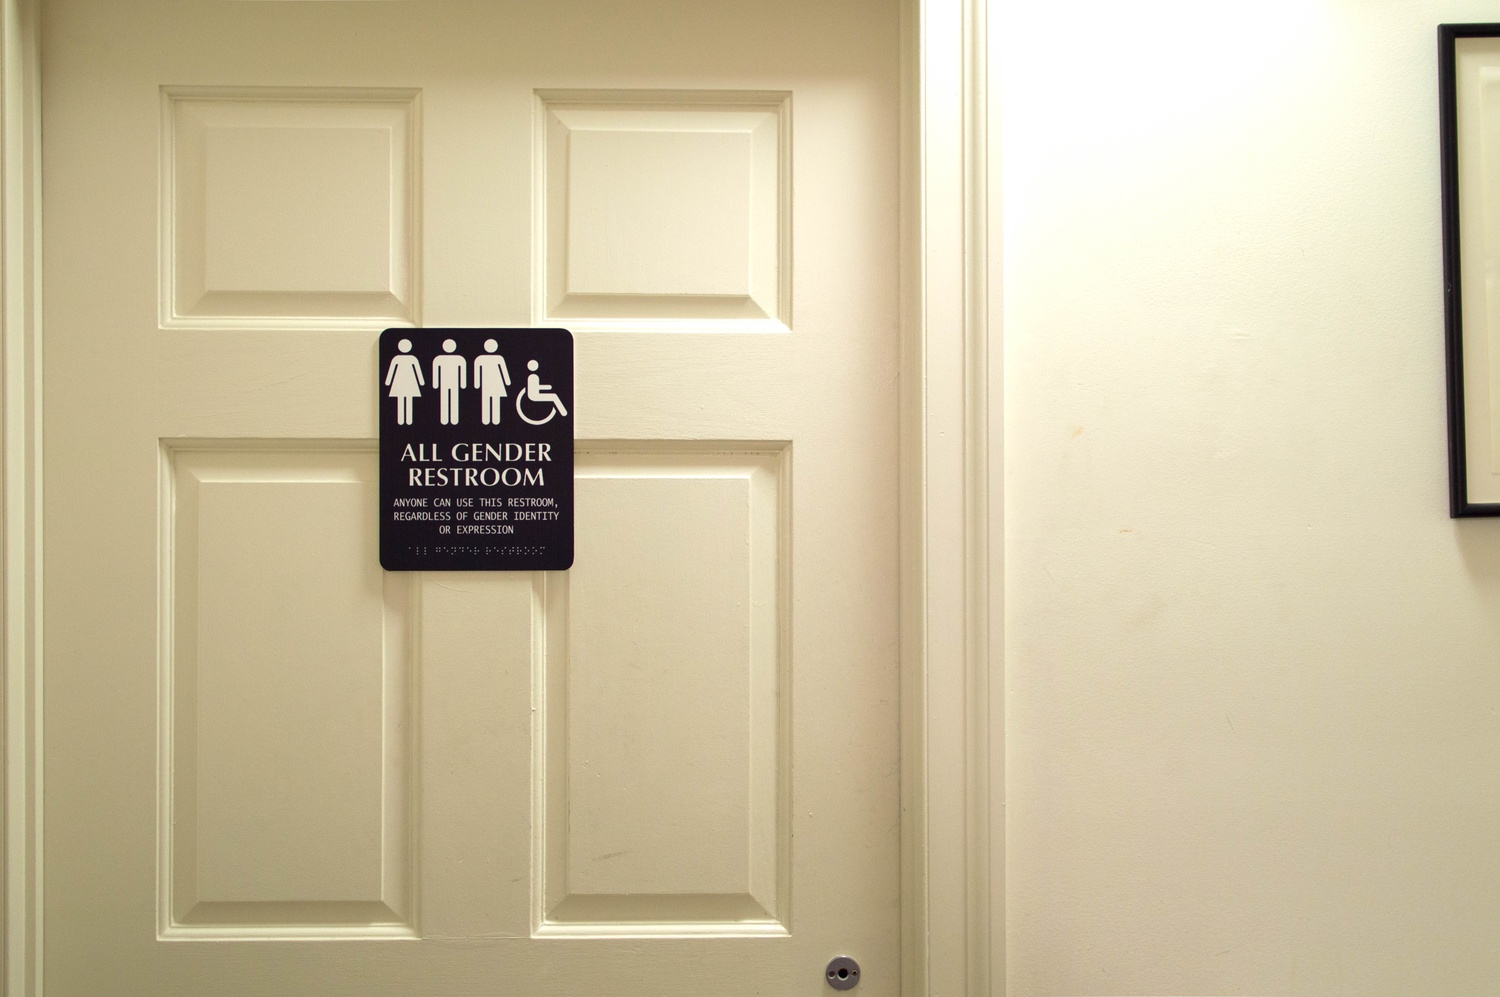 Commission Pushing Gender-Neutral Bathrooms in Square Businesses ...